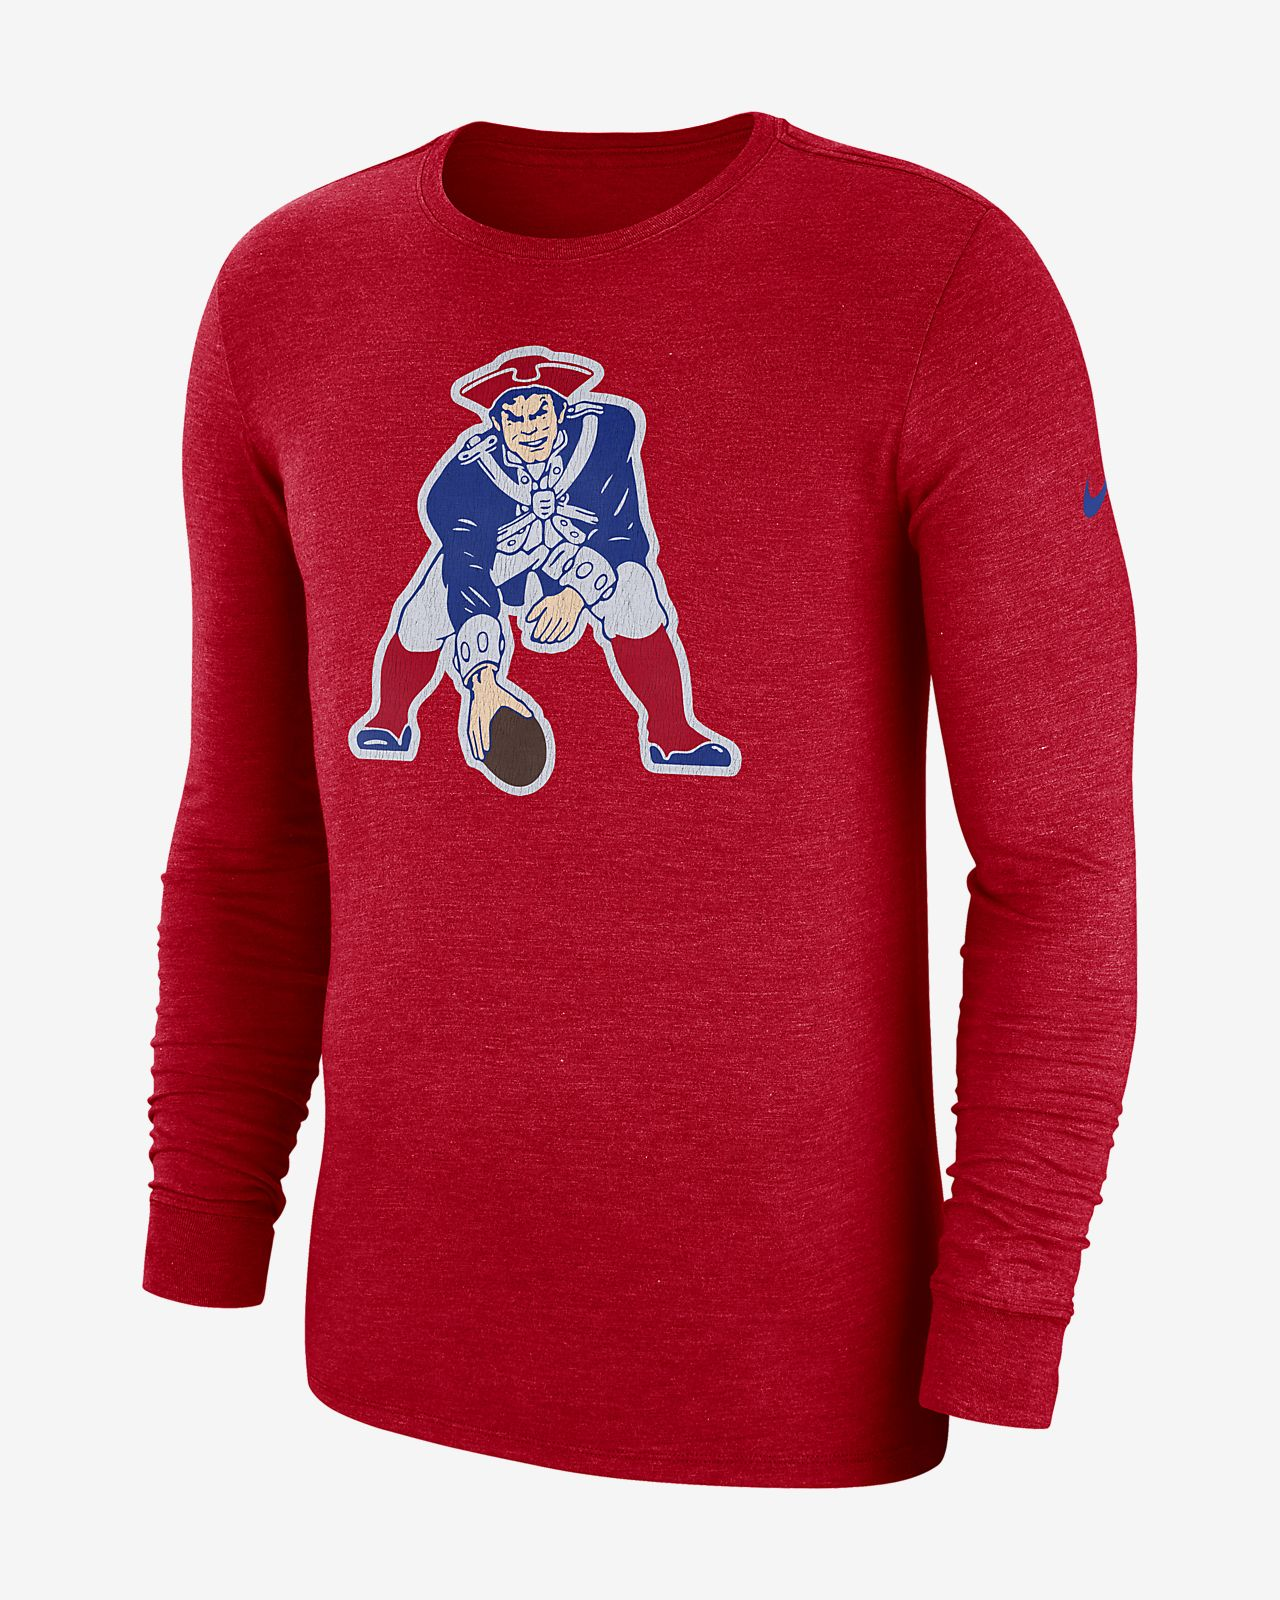 Nike (NFL Patriots) Men's Tri-Blend Long-Sleeve T-Shirt